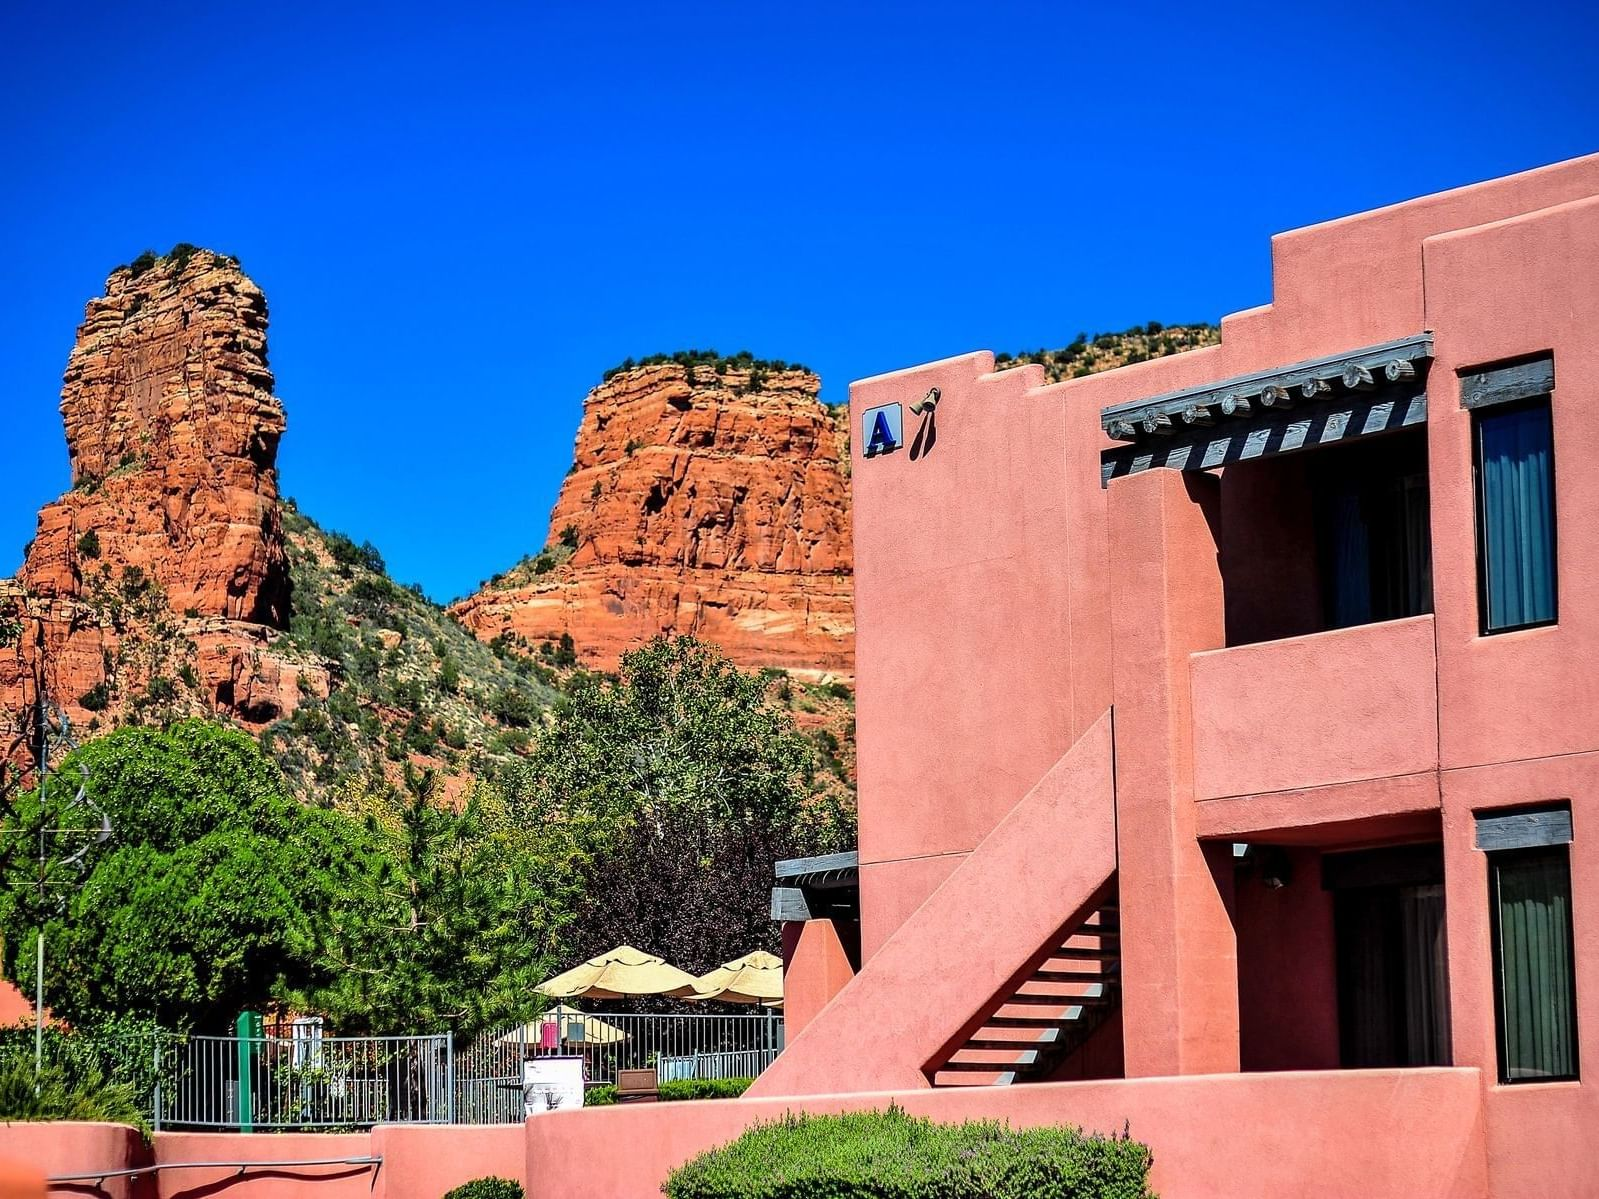 Exterior view of the of Diamond Sedona Portal Hotel with the view of mountains